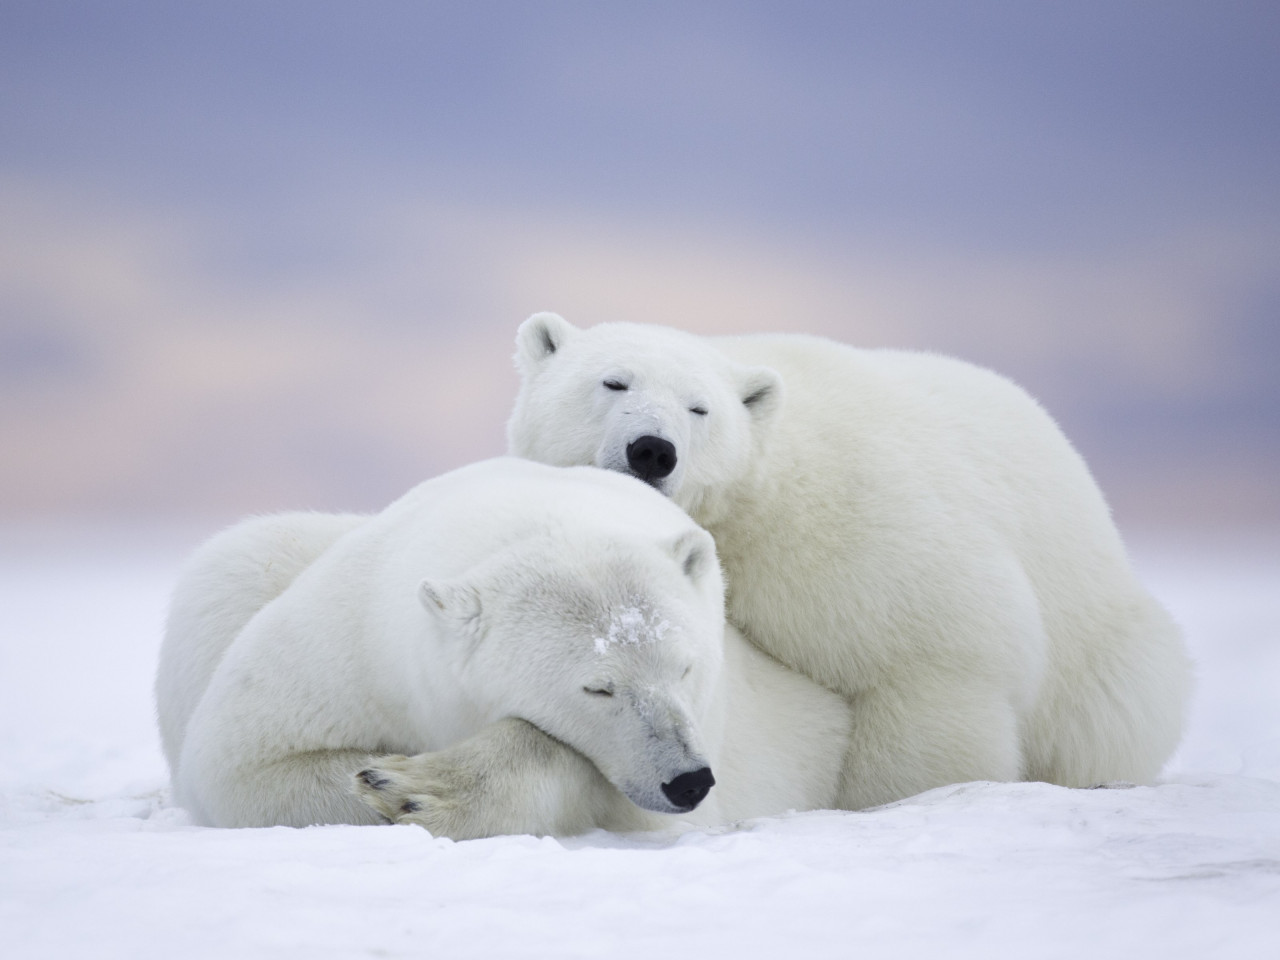 Wild polar bears in Alaska wallpaper 1280x960